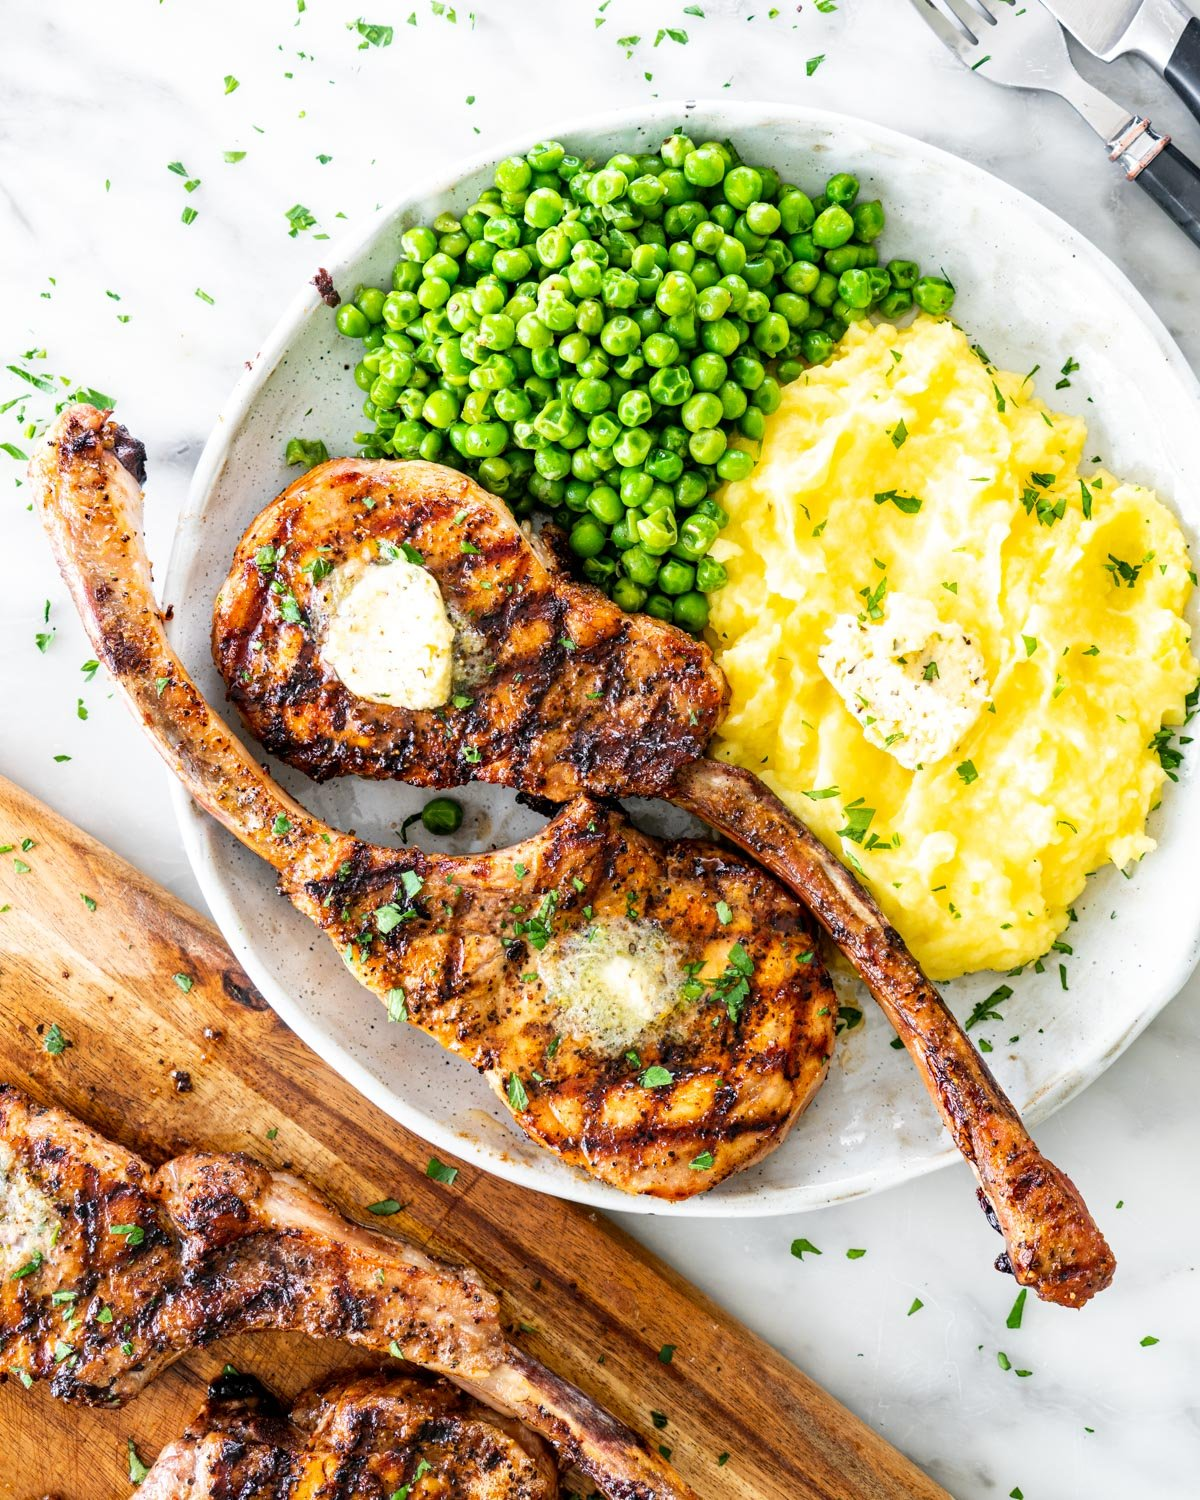 overhead shot of grilled pork chops on a plate with mashed potatoes and peas